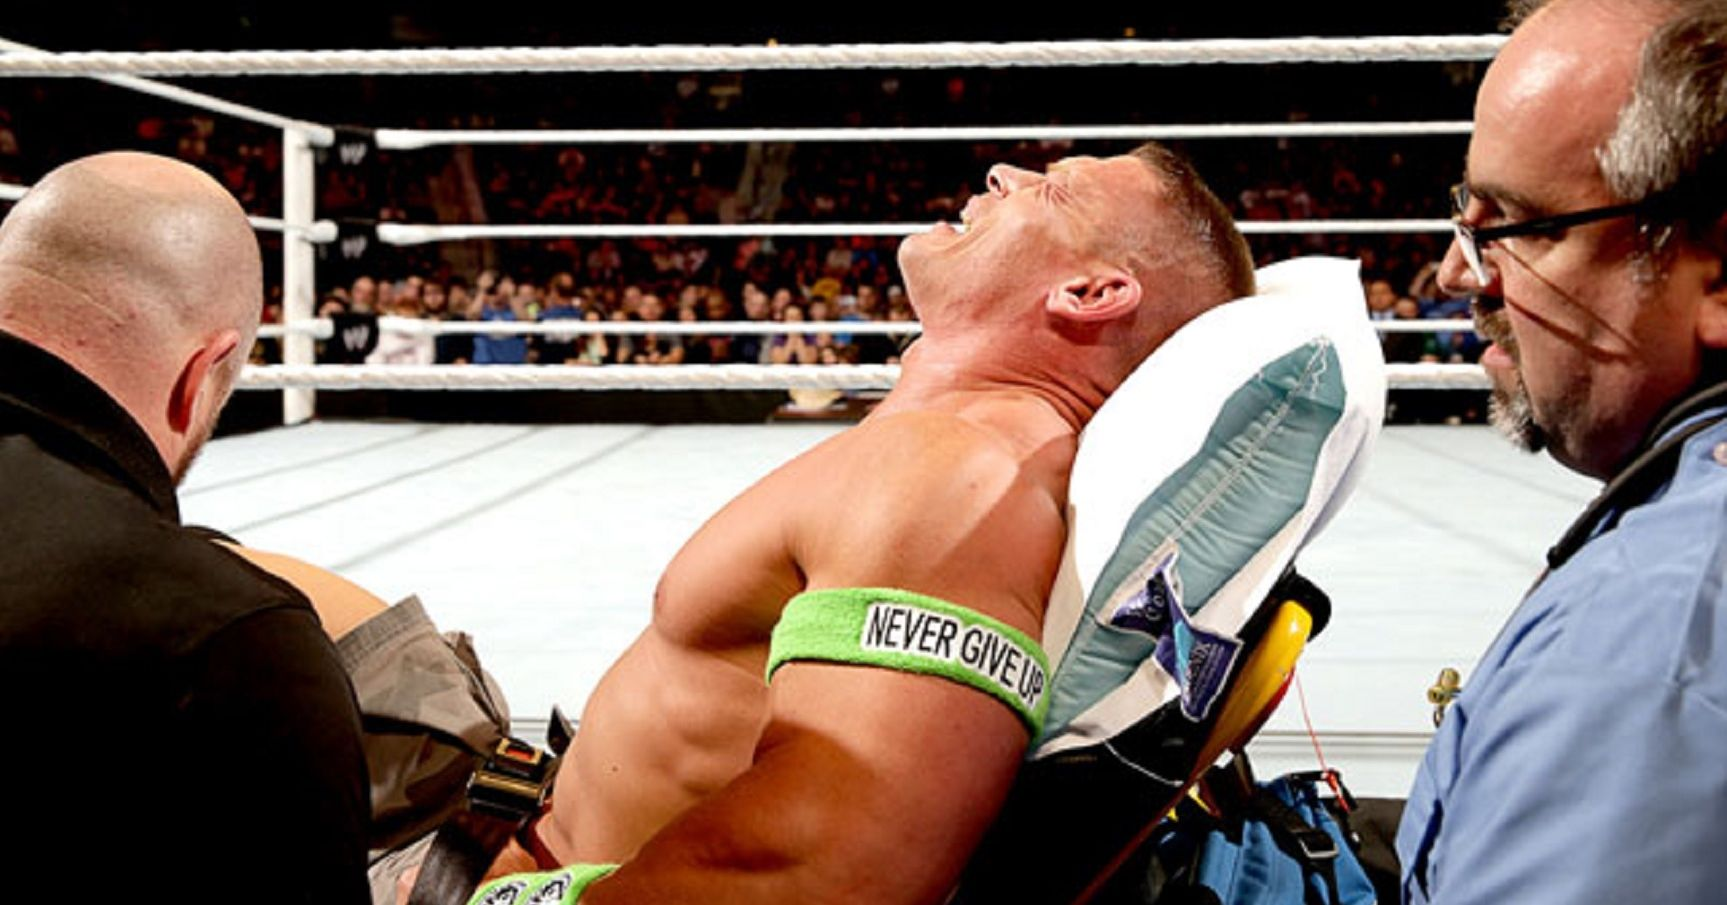 15 Wrestlers Who Faked Serious Injuries